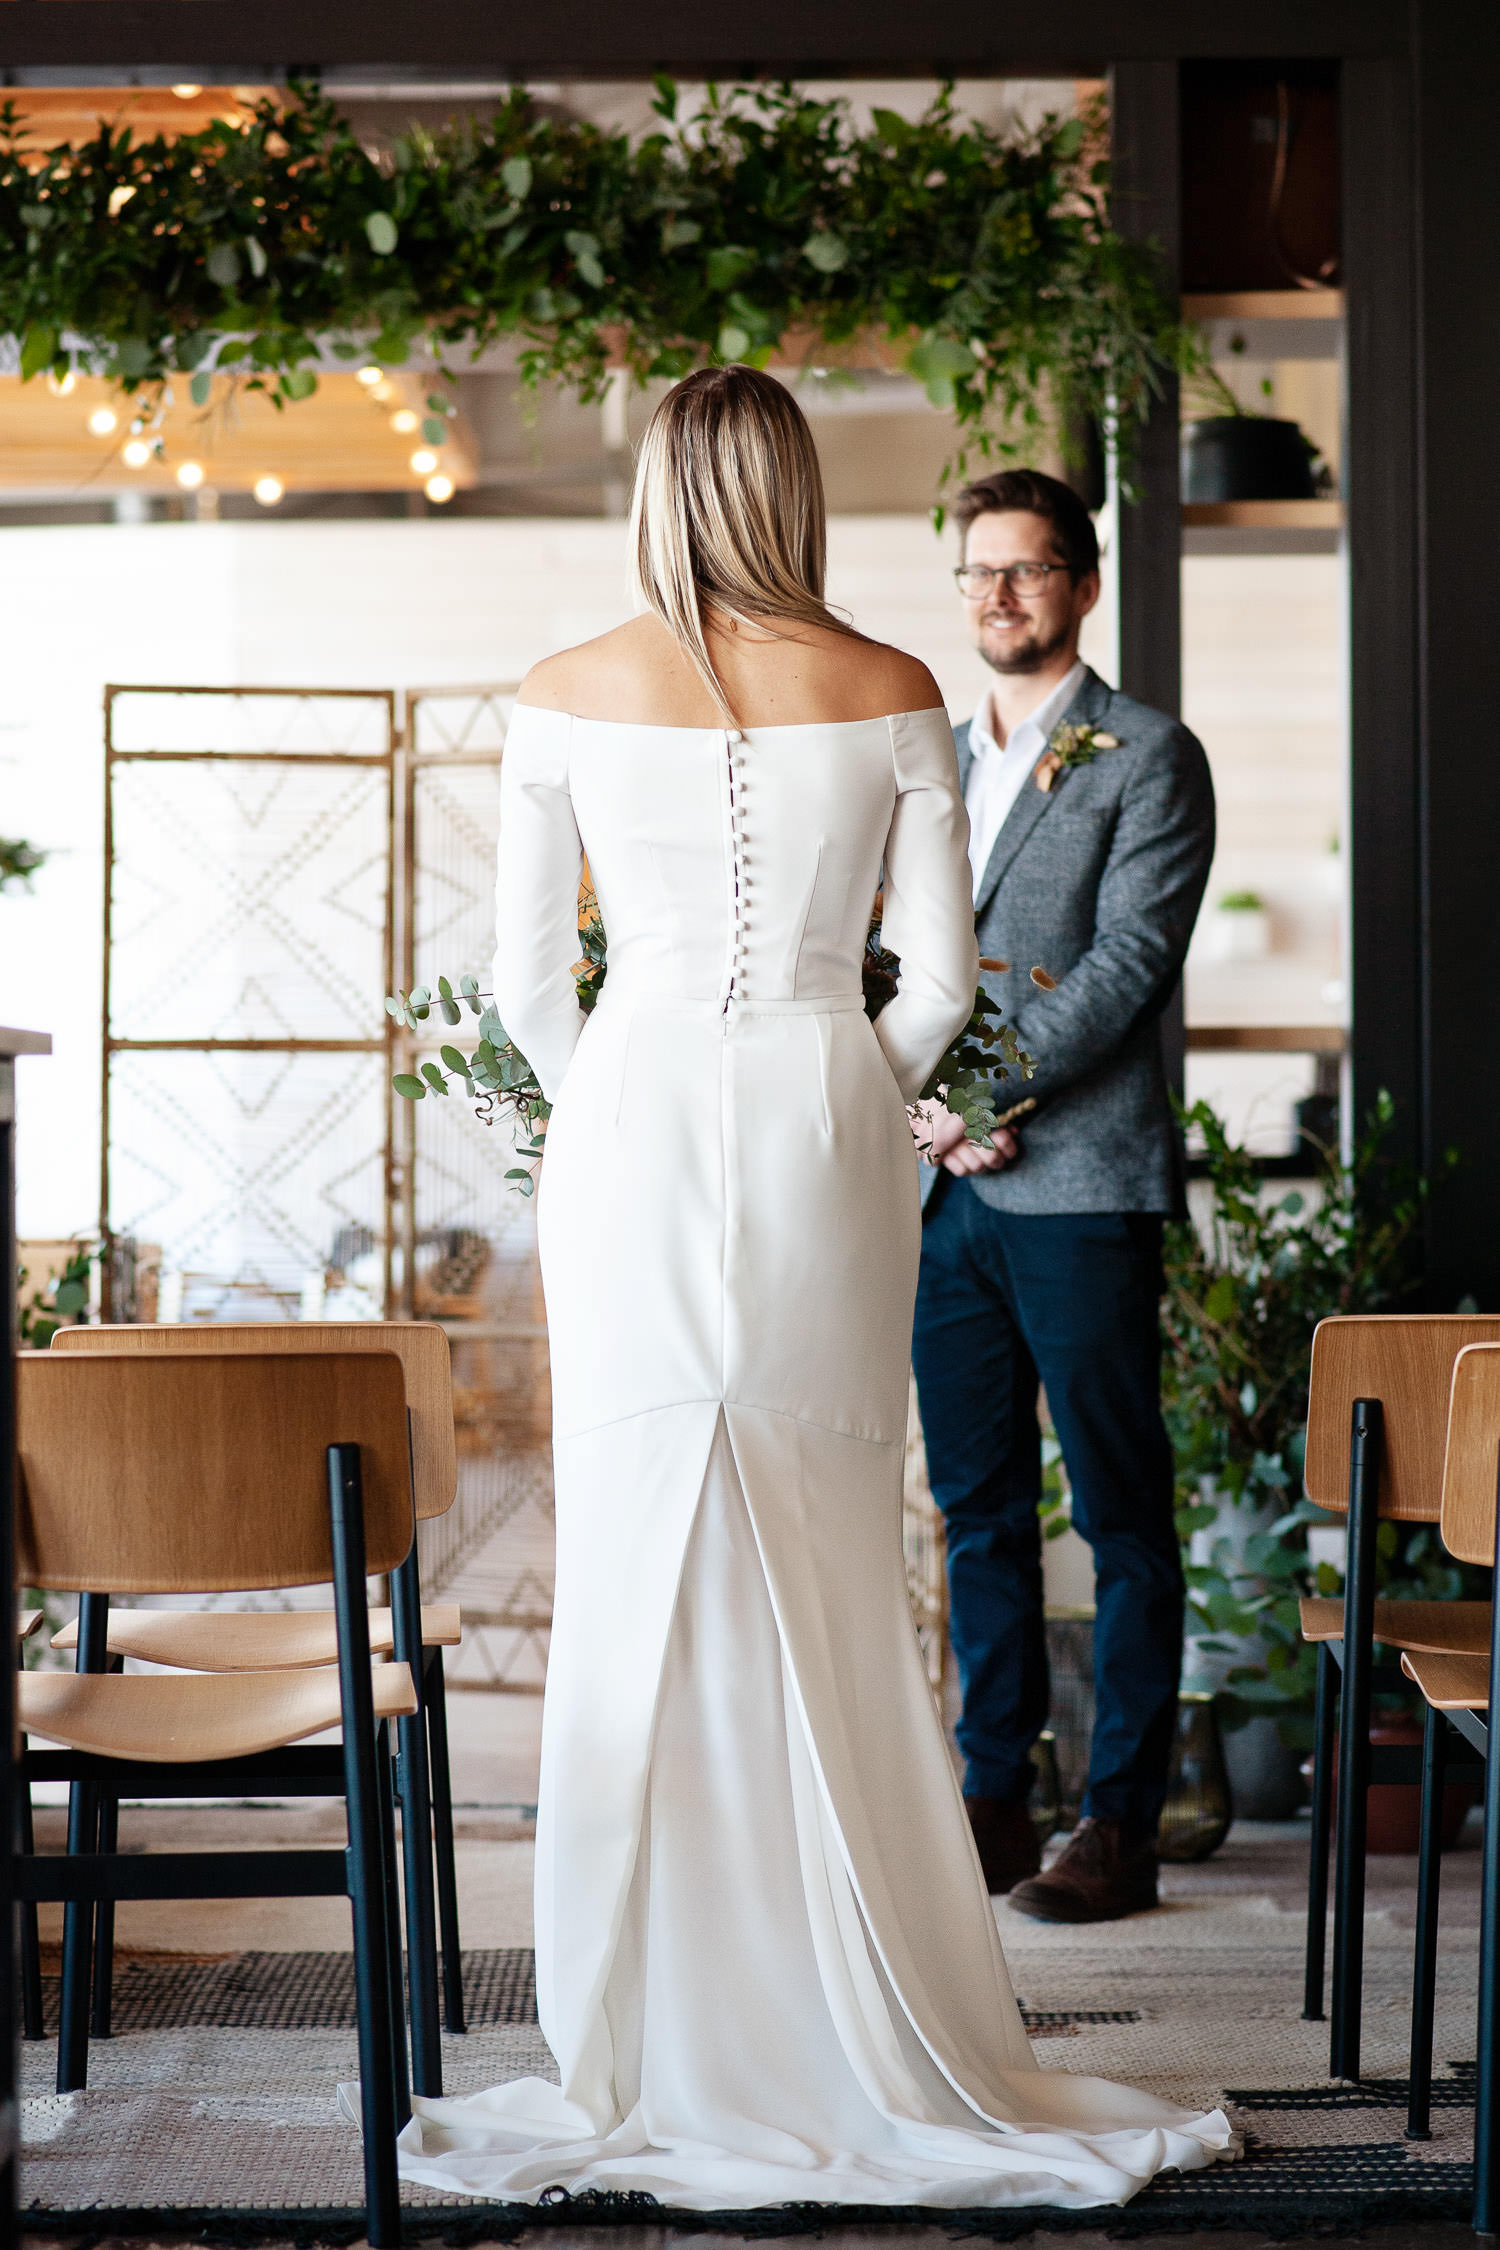 Bride walks down the aisle at her Annex Ale Project Wedding captured by Tara Whittaker Photography